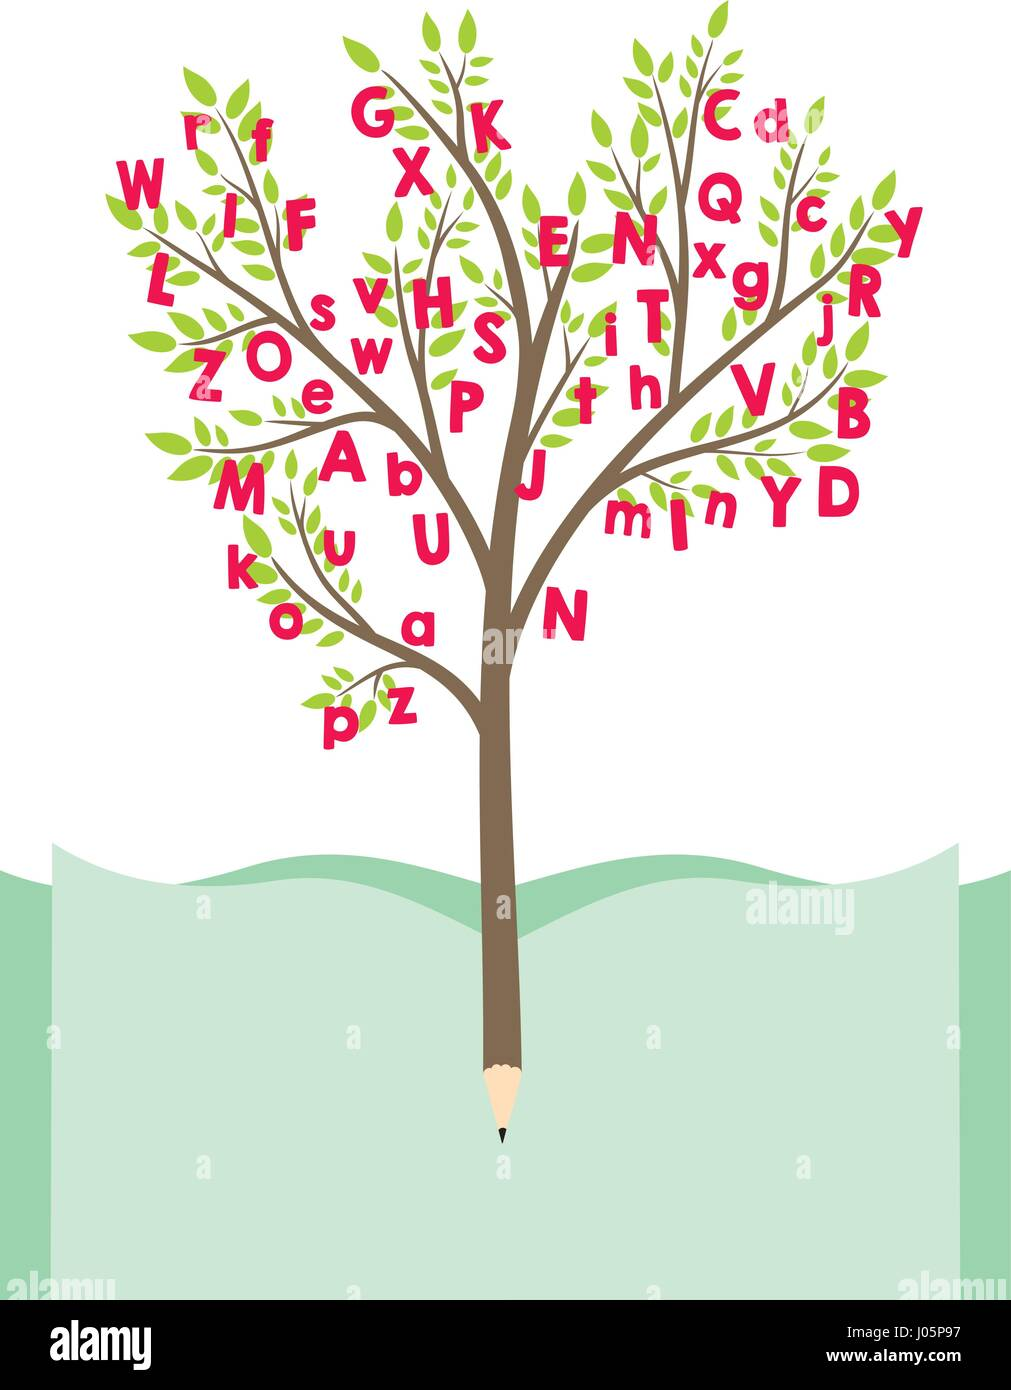 tree of knowledge vector stockfotos tree of knowledge vector bilder alamy. Black Bedroom Furniture Sets. Home Design Ideas